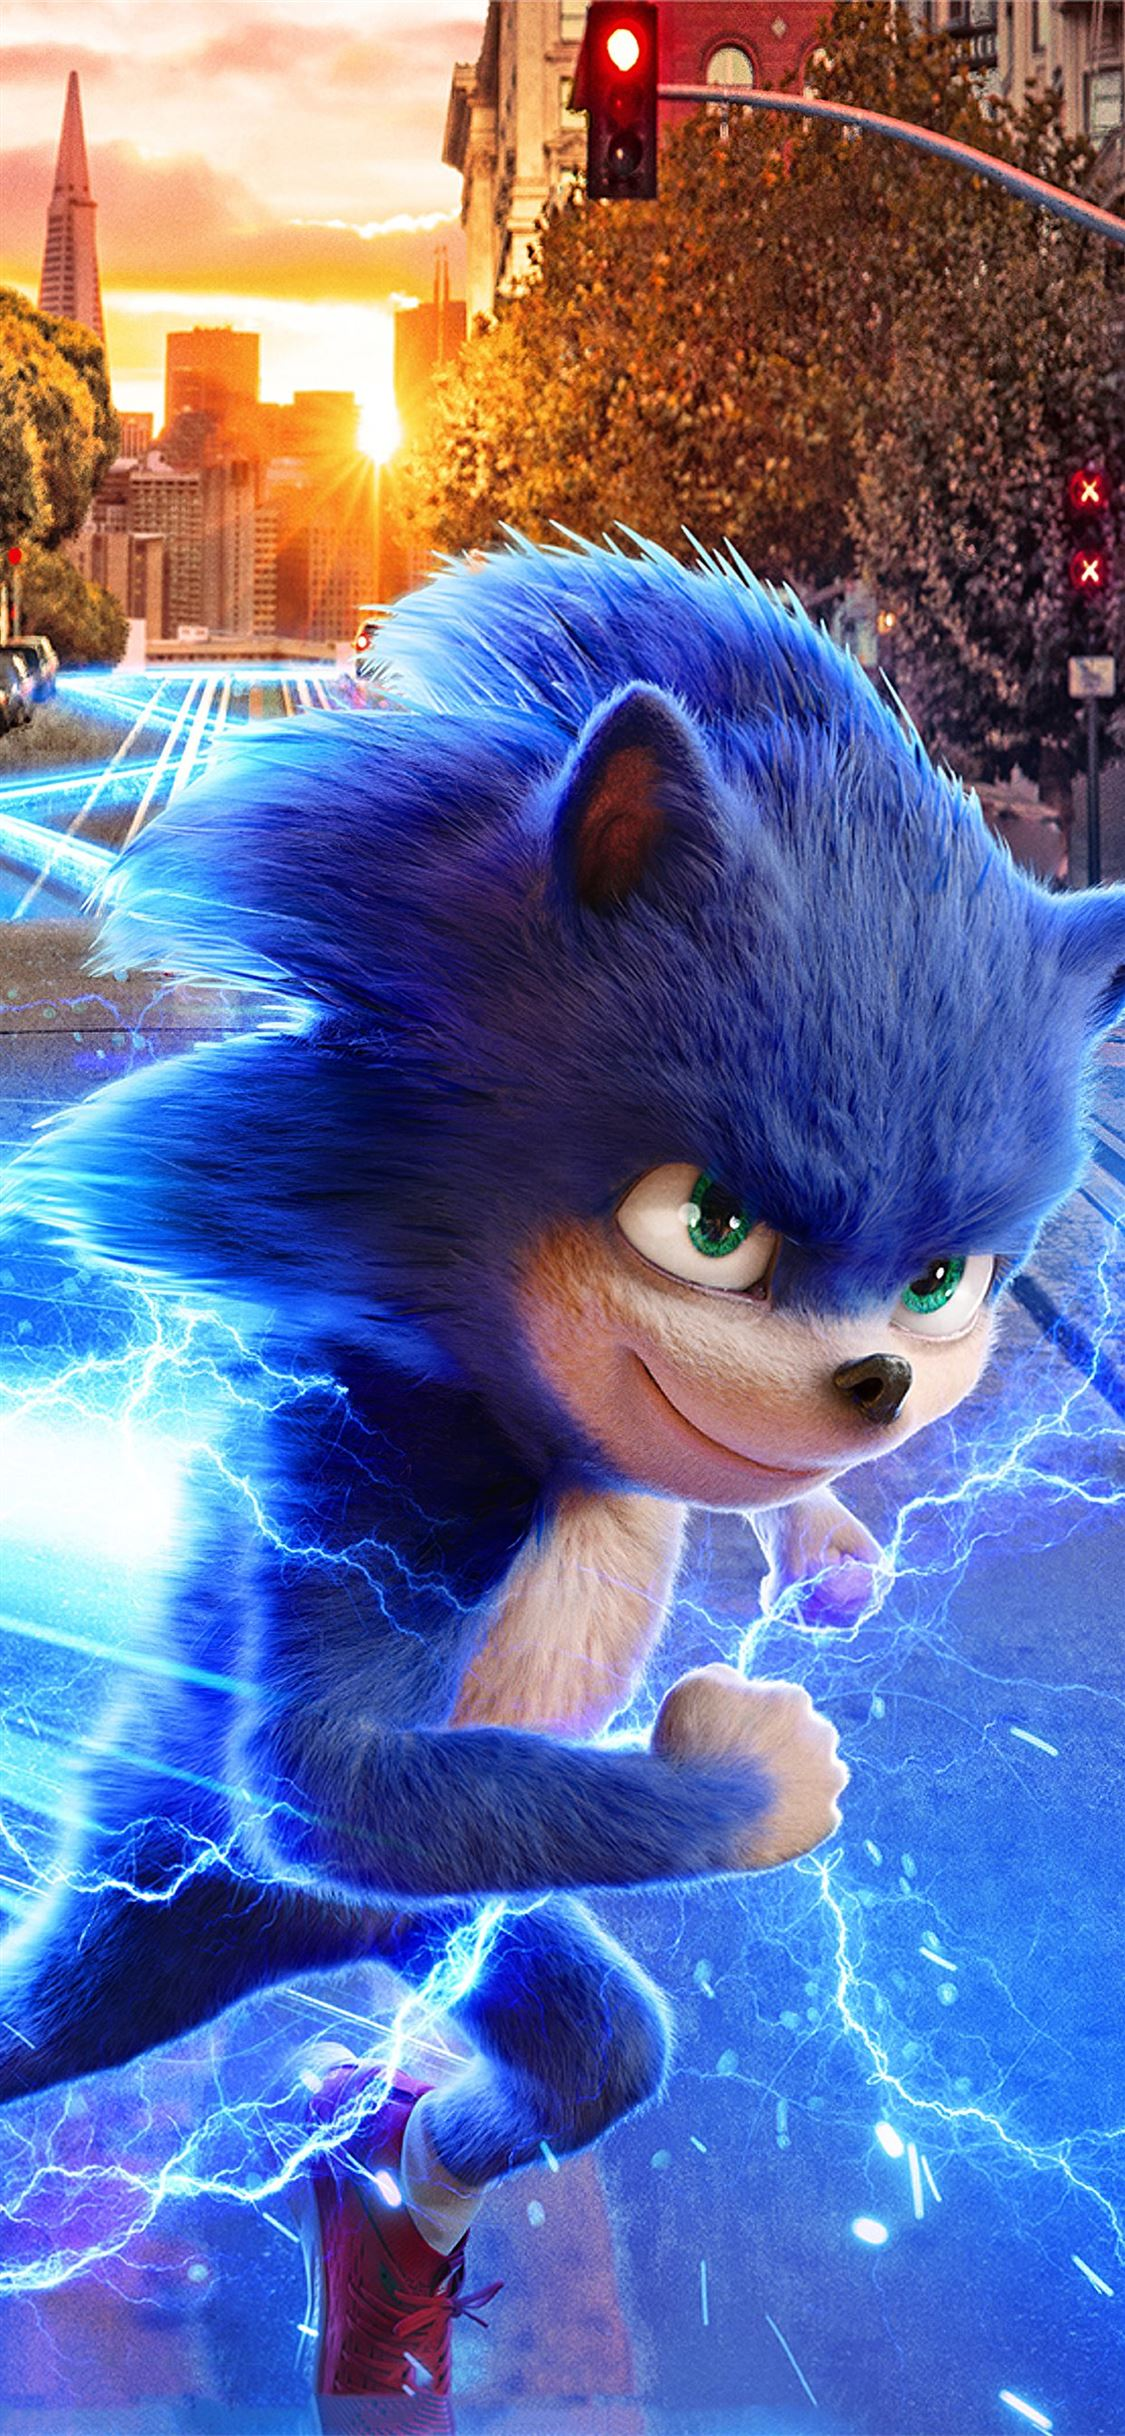 Movie Sonic The Hedgehog 2020 Iphone X Wallpapers Free Download